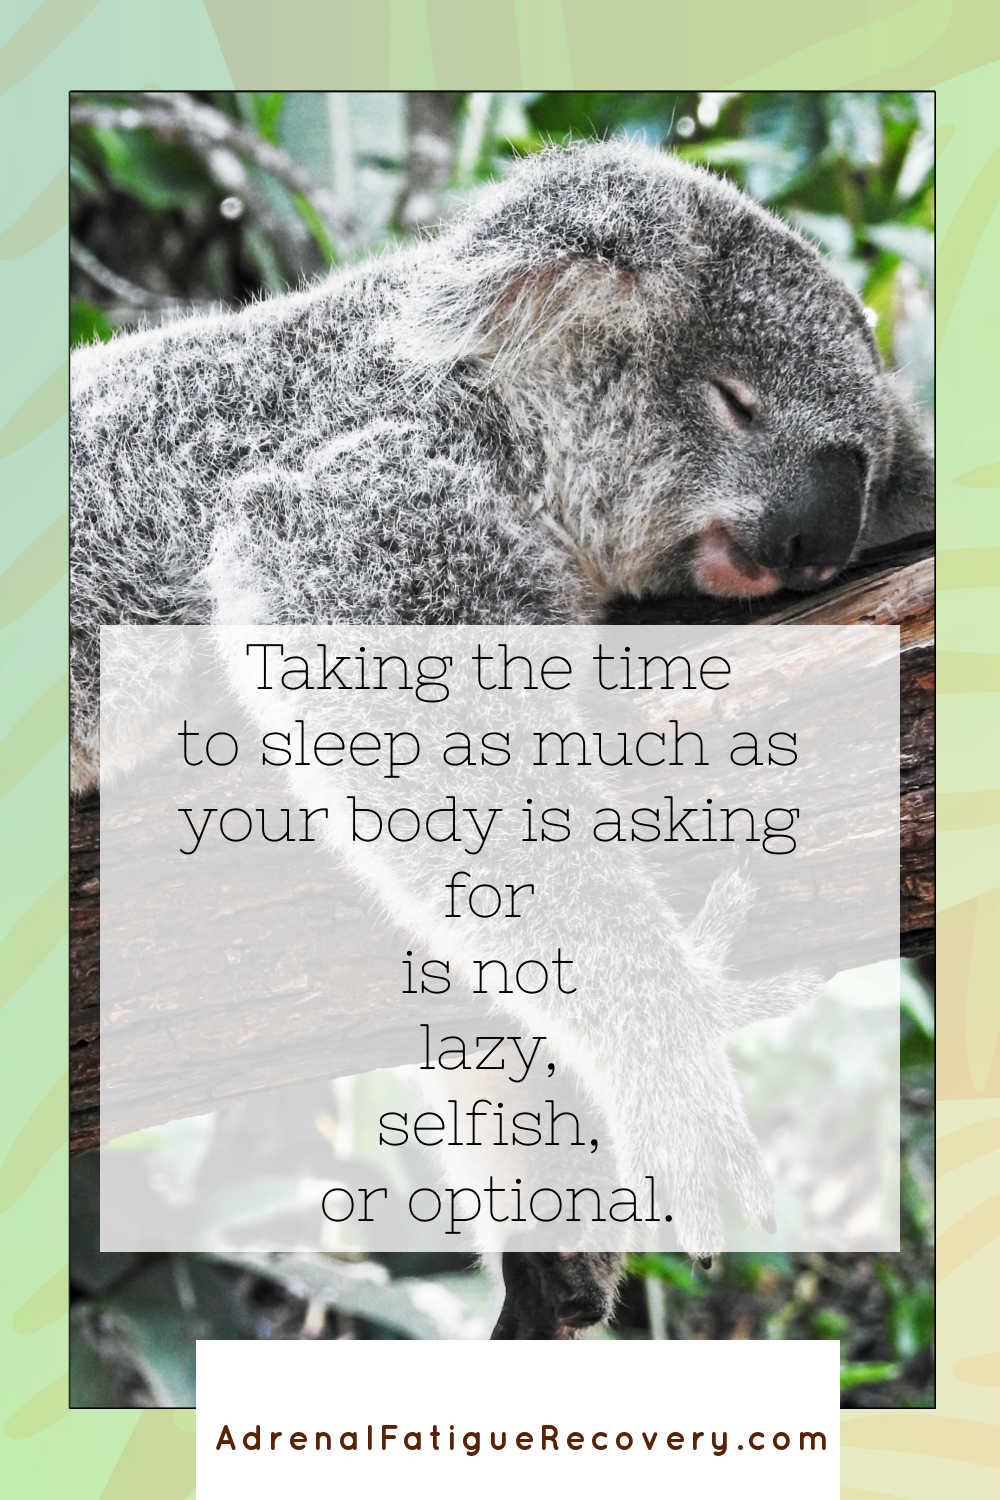 picture of koala napping on a branch with text overlay